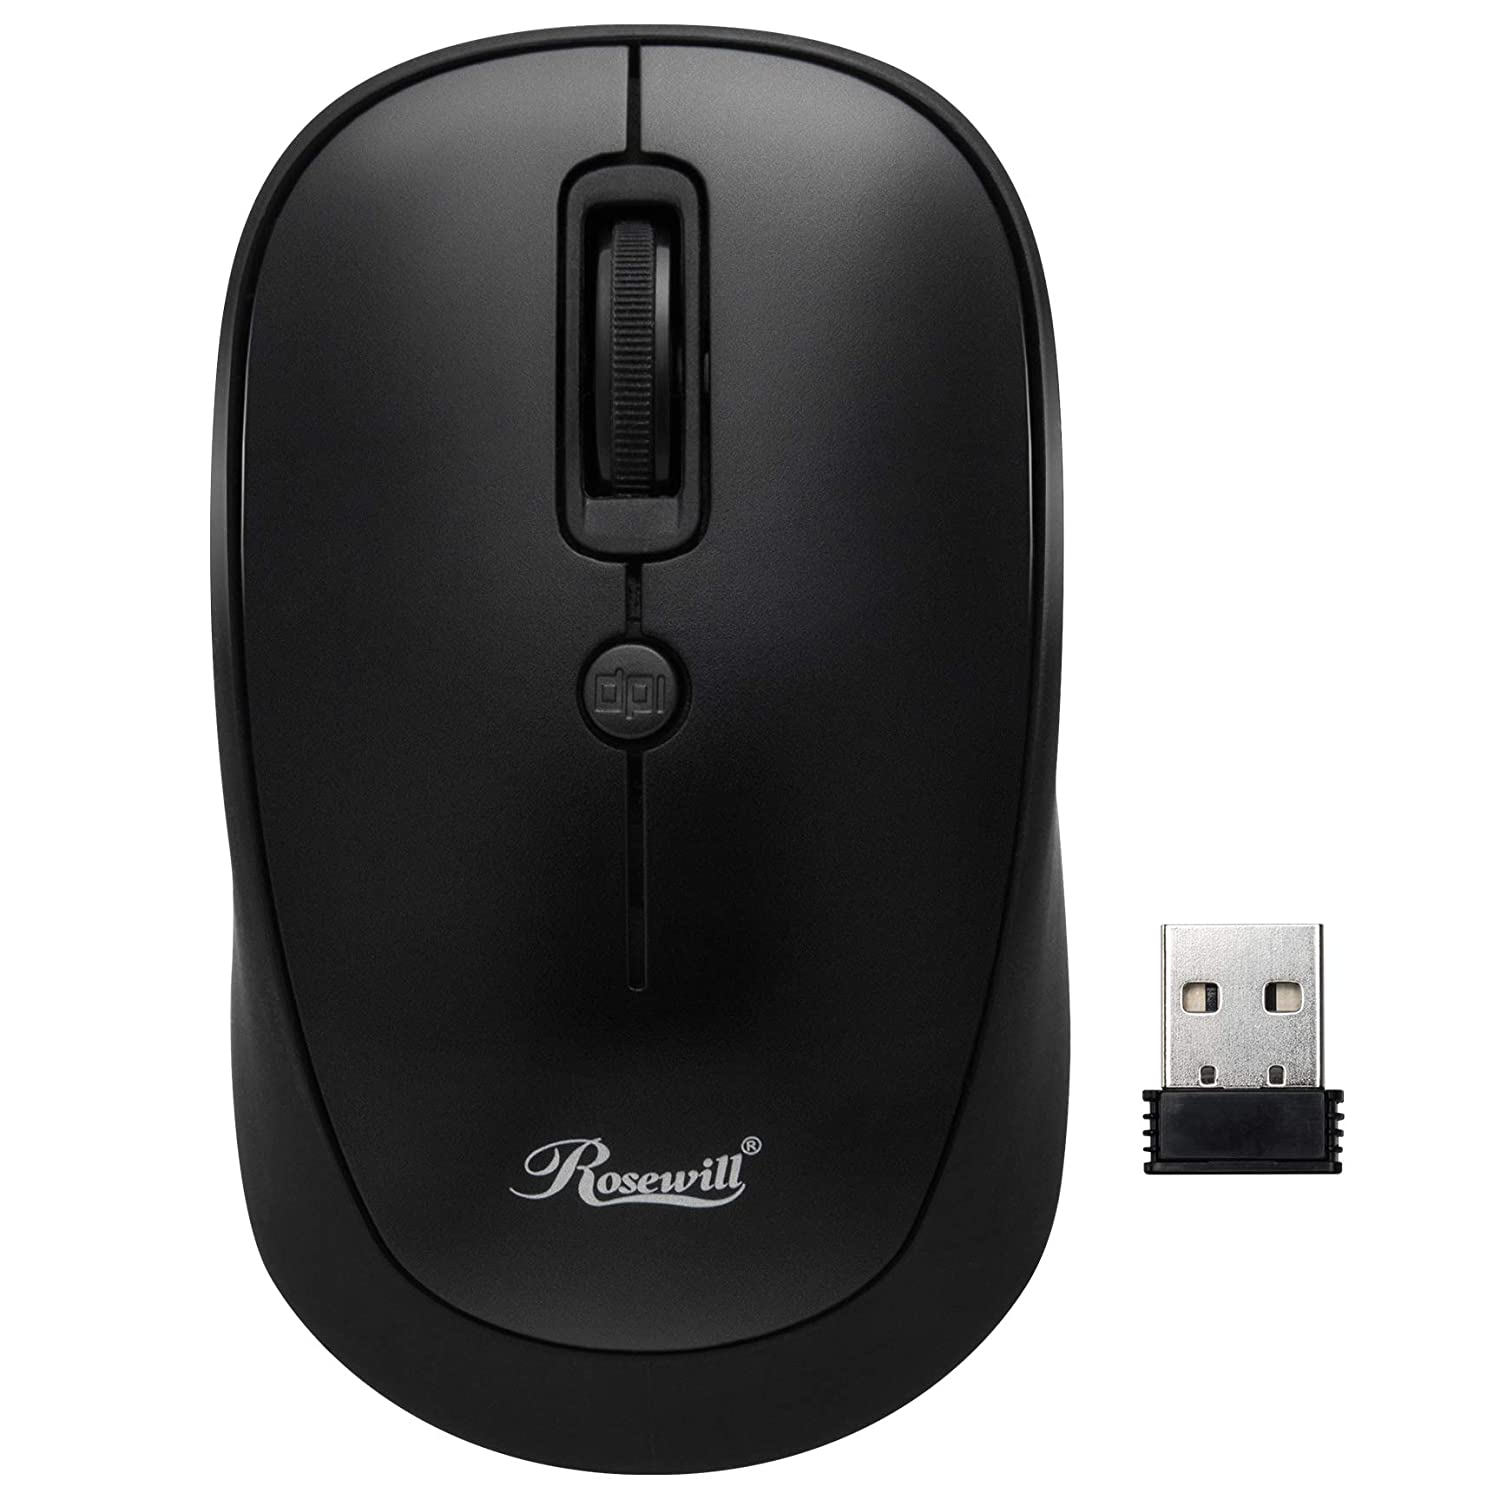 a46b733fa16 Amazon.com: Rosewill RWM-001 Portable Cordless Compact Travel Mouse, Optical  Sensor, USB Wireless Receiver, Adjustable DPI, 4 Buttons, Office Style for  ...